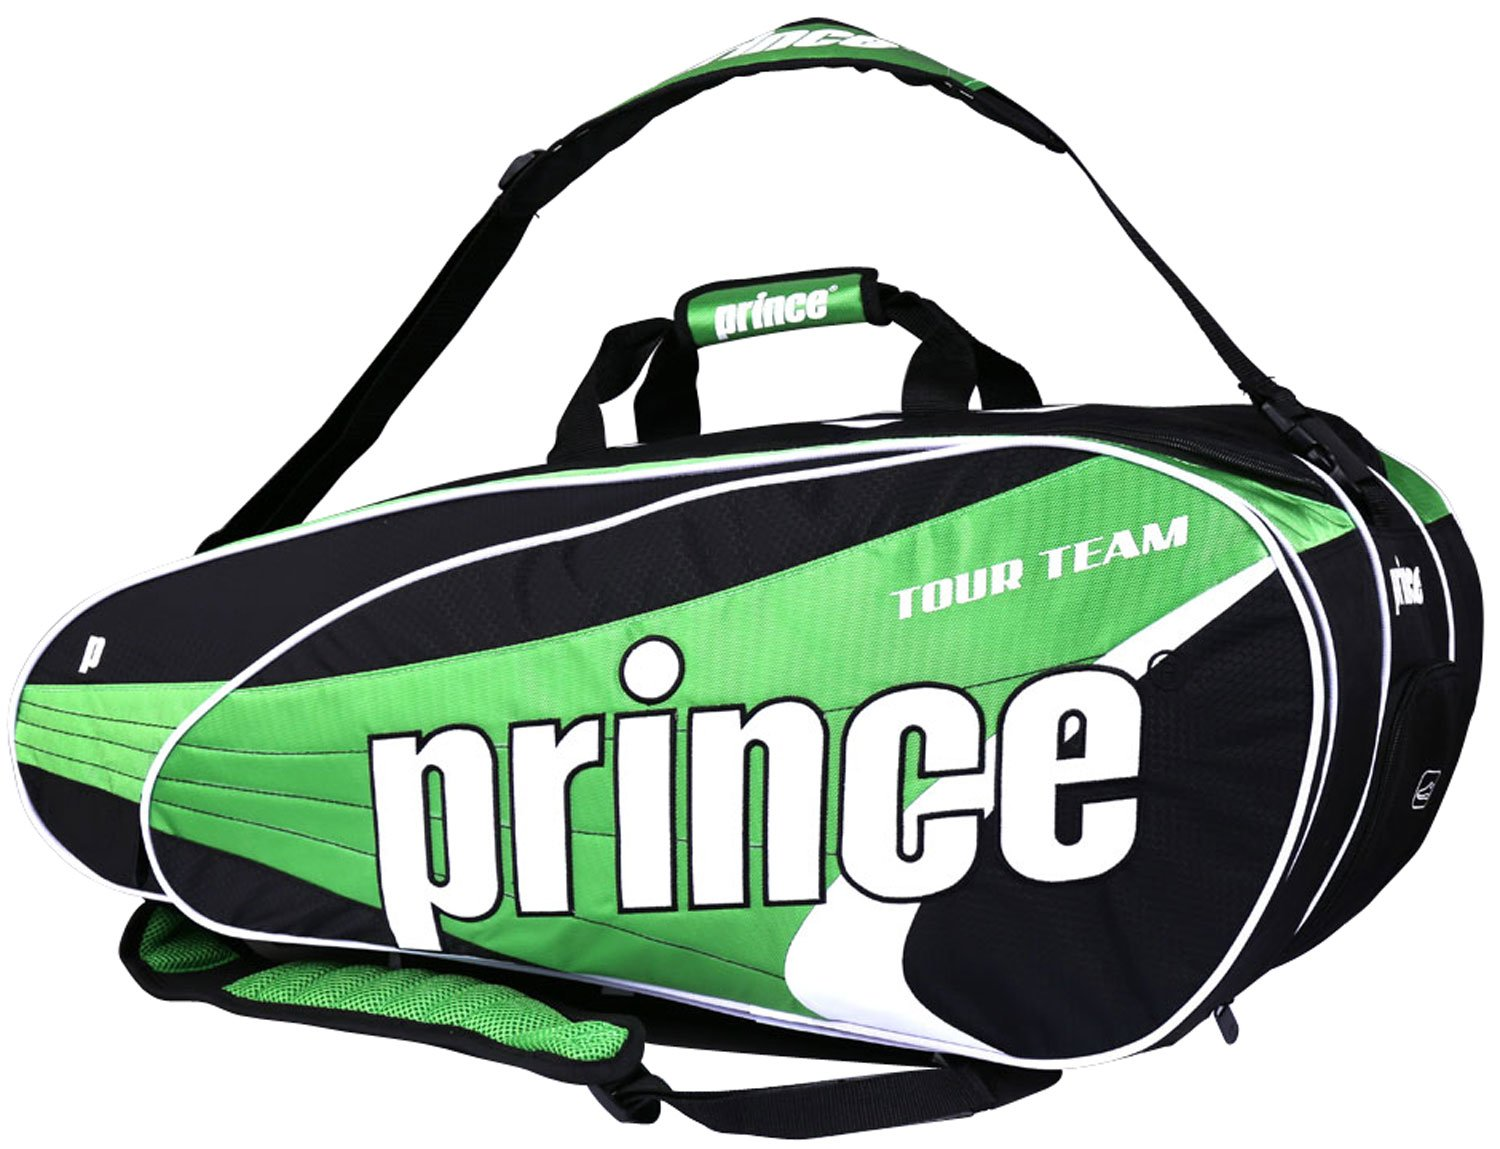 Prince Tour Team Green 12-Pack Tennis Bag (2014-15) by Prince (Image #1)